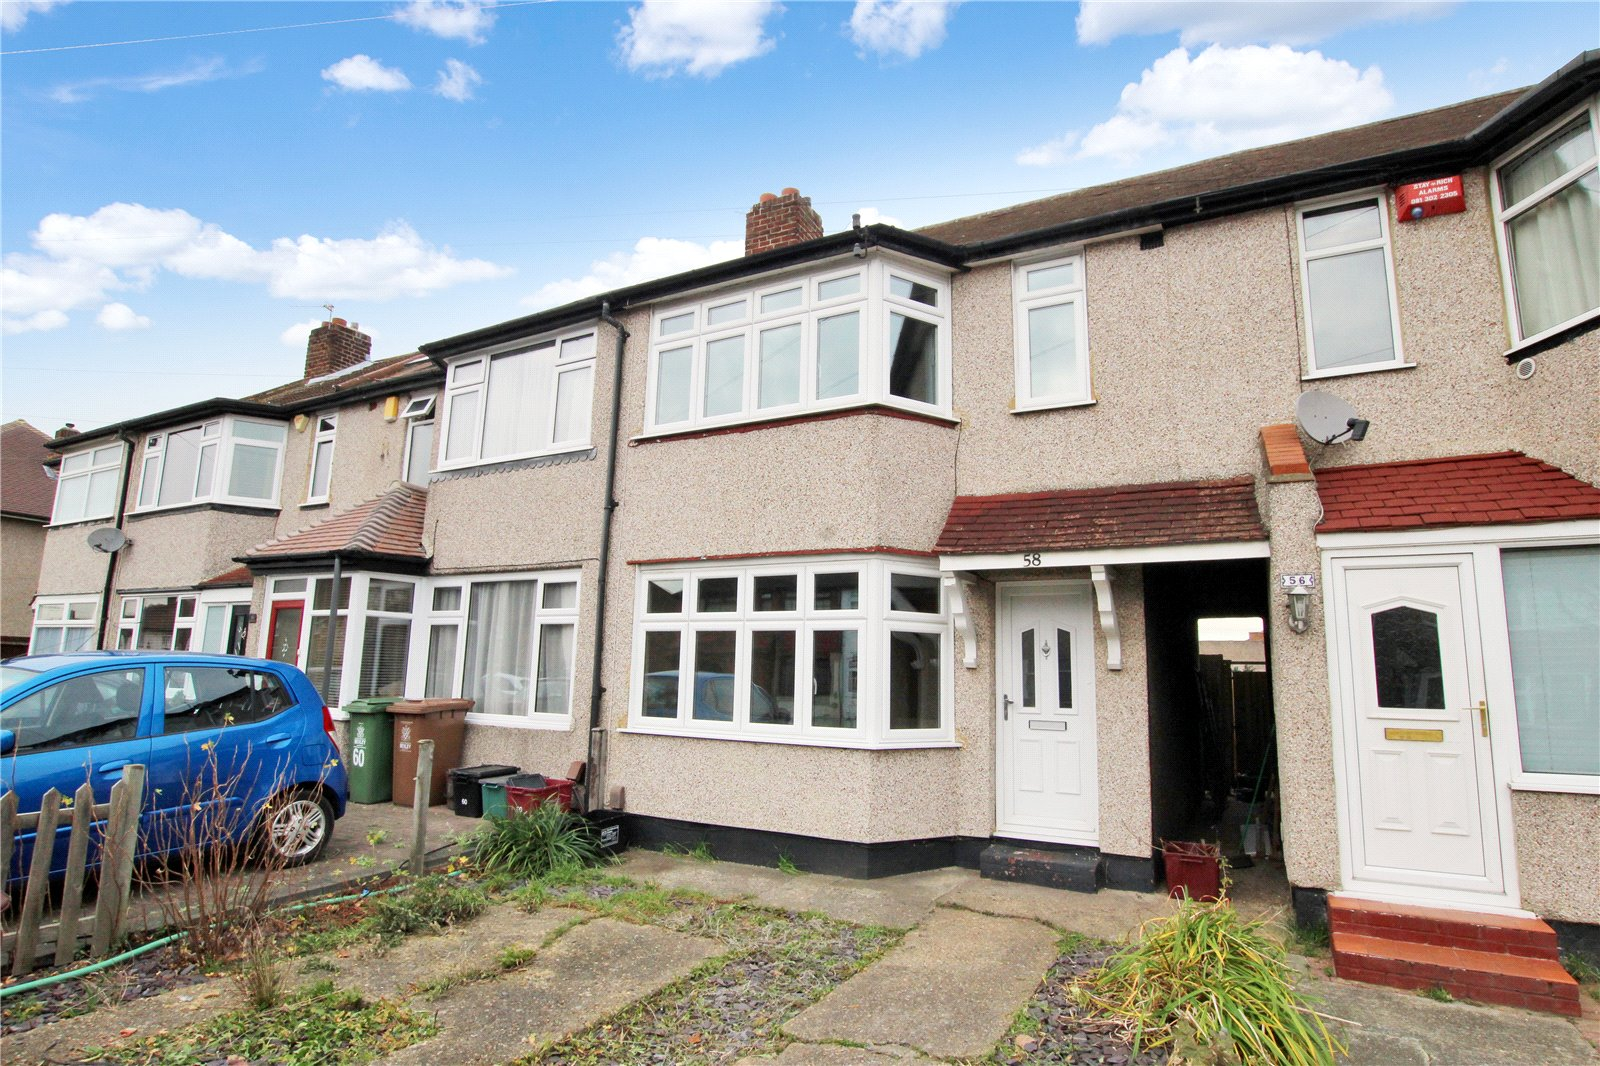 Tyrrell Avenue, South Welling, Kent, DA16